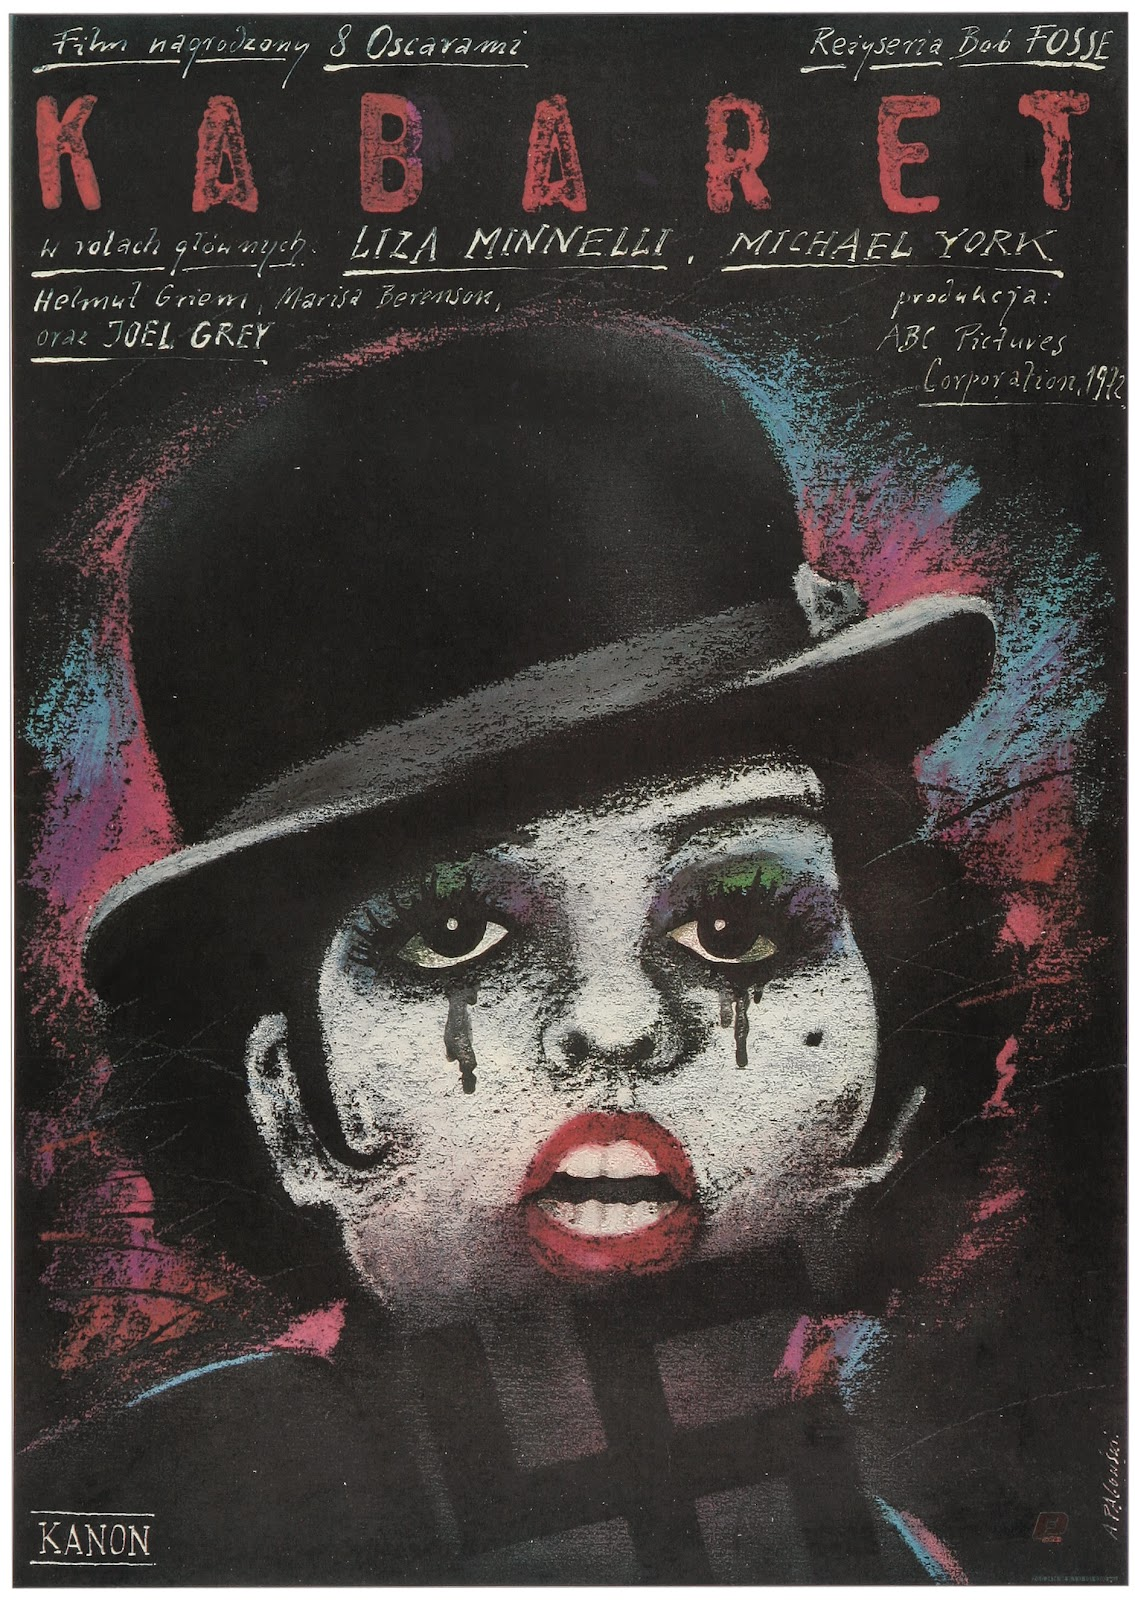 Polish Film Poster Picture Archive: Cabaret, 1972